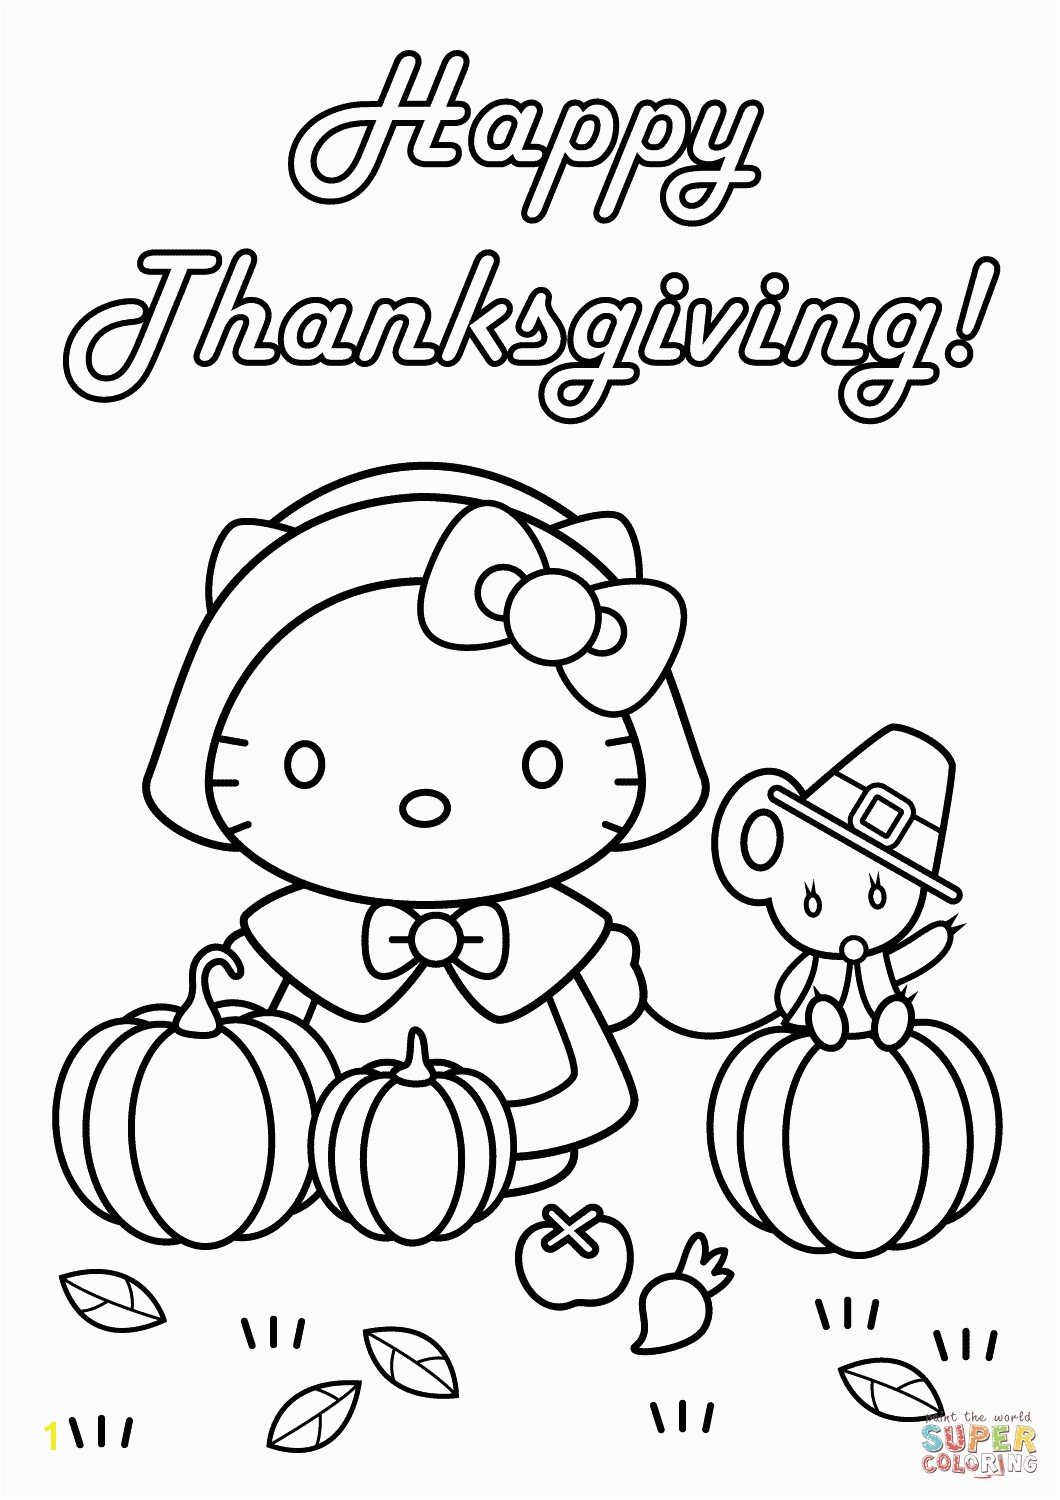 Hello Kitty Coloring Pages Free Online Game Free Printable Hello Kitty Family Coloring Pages Online at Coloring Page